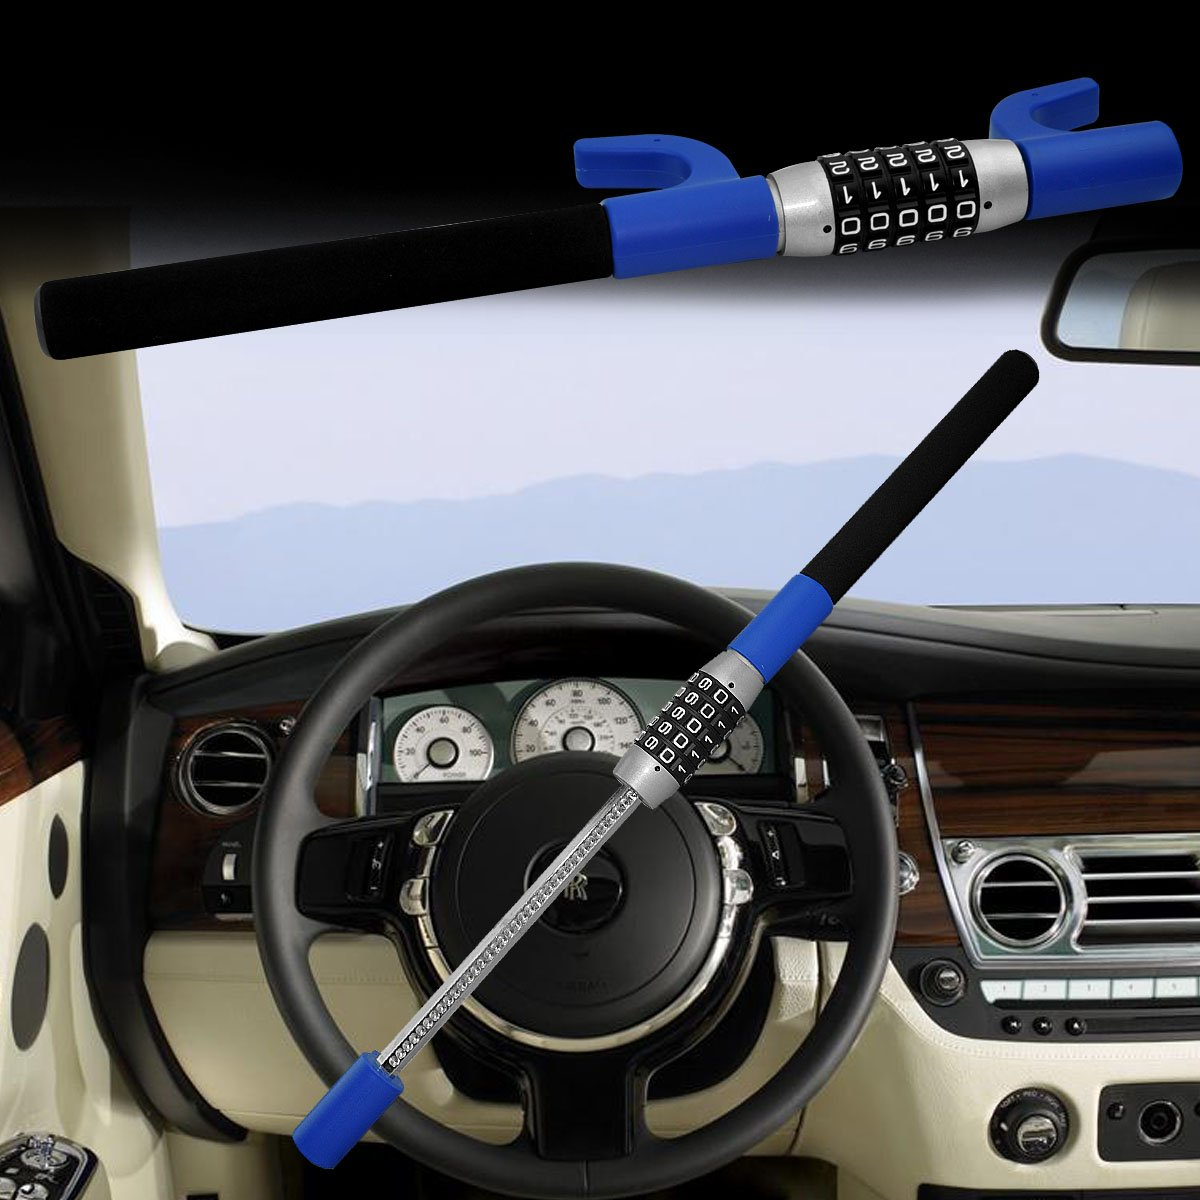 LC Prime Steering Wheel Lock Universal Vehicle Car Truck Van SUV Keyless Password Coded Twin Hooks Extendable Retractable Heavy Duty Security Guard Anti Theft Steel Plastic Blue by LC Prime